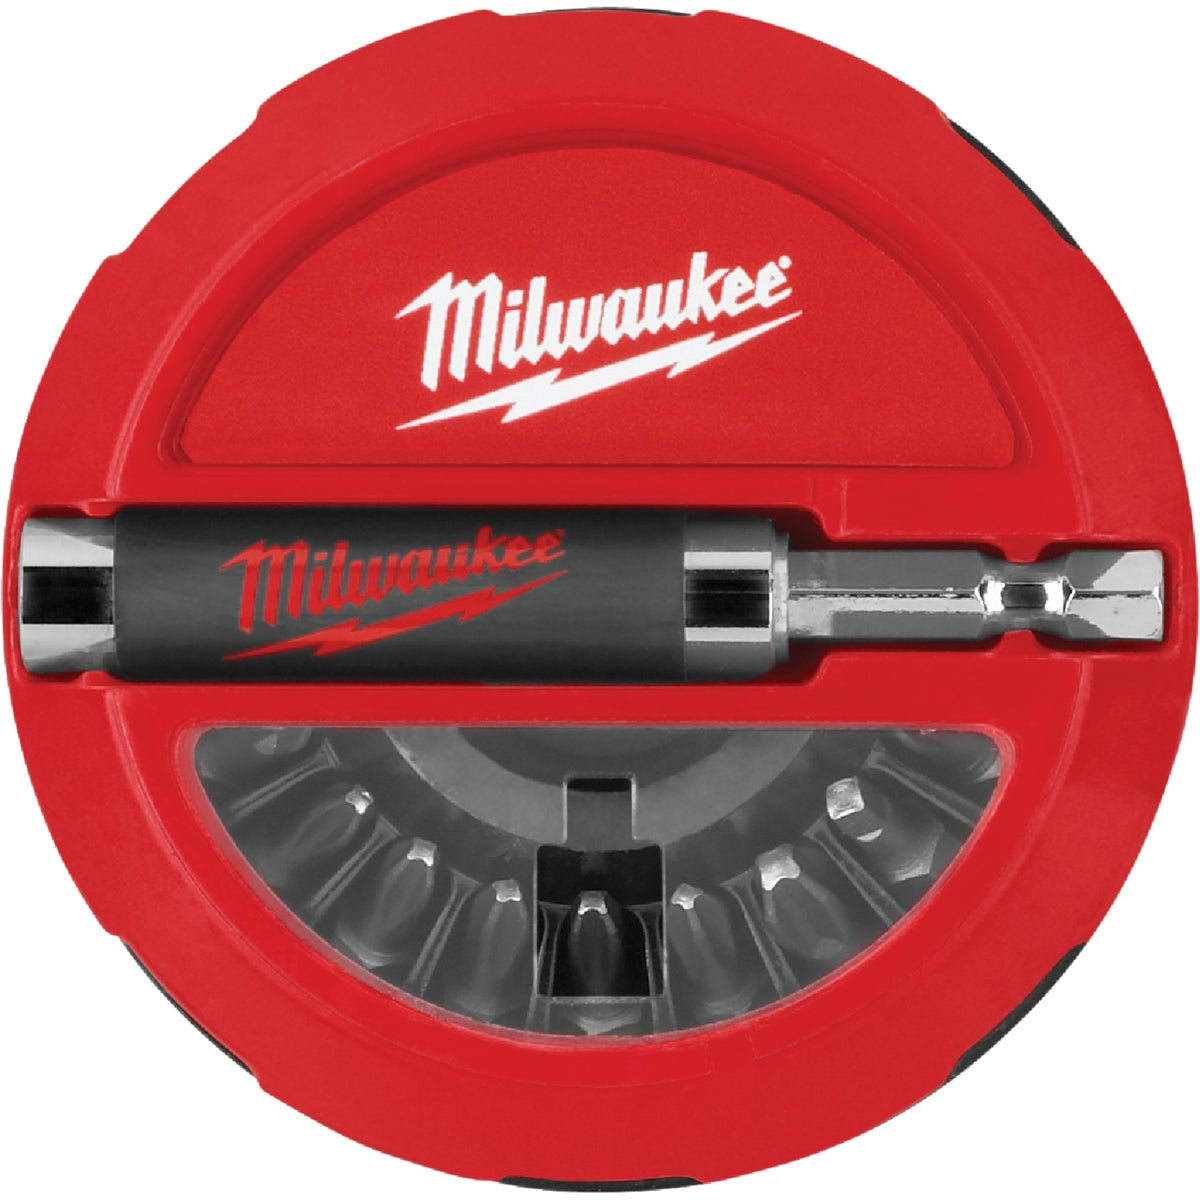 20PC INSERT BIT PUCK - 48-32-1700 by Milwaukee Accessory